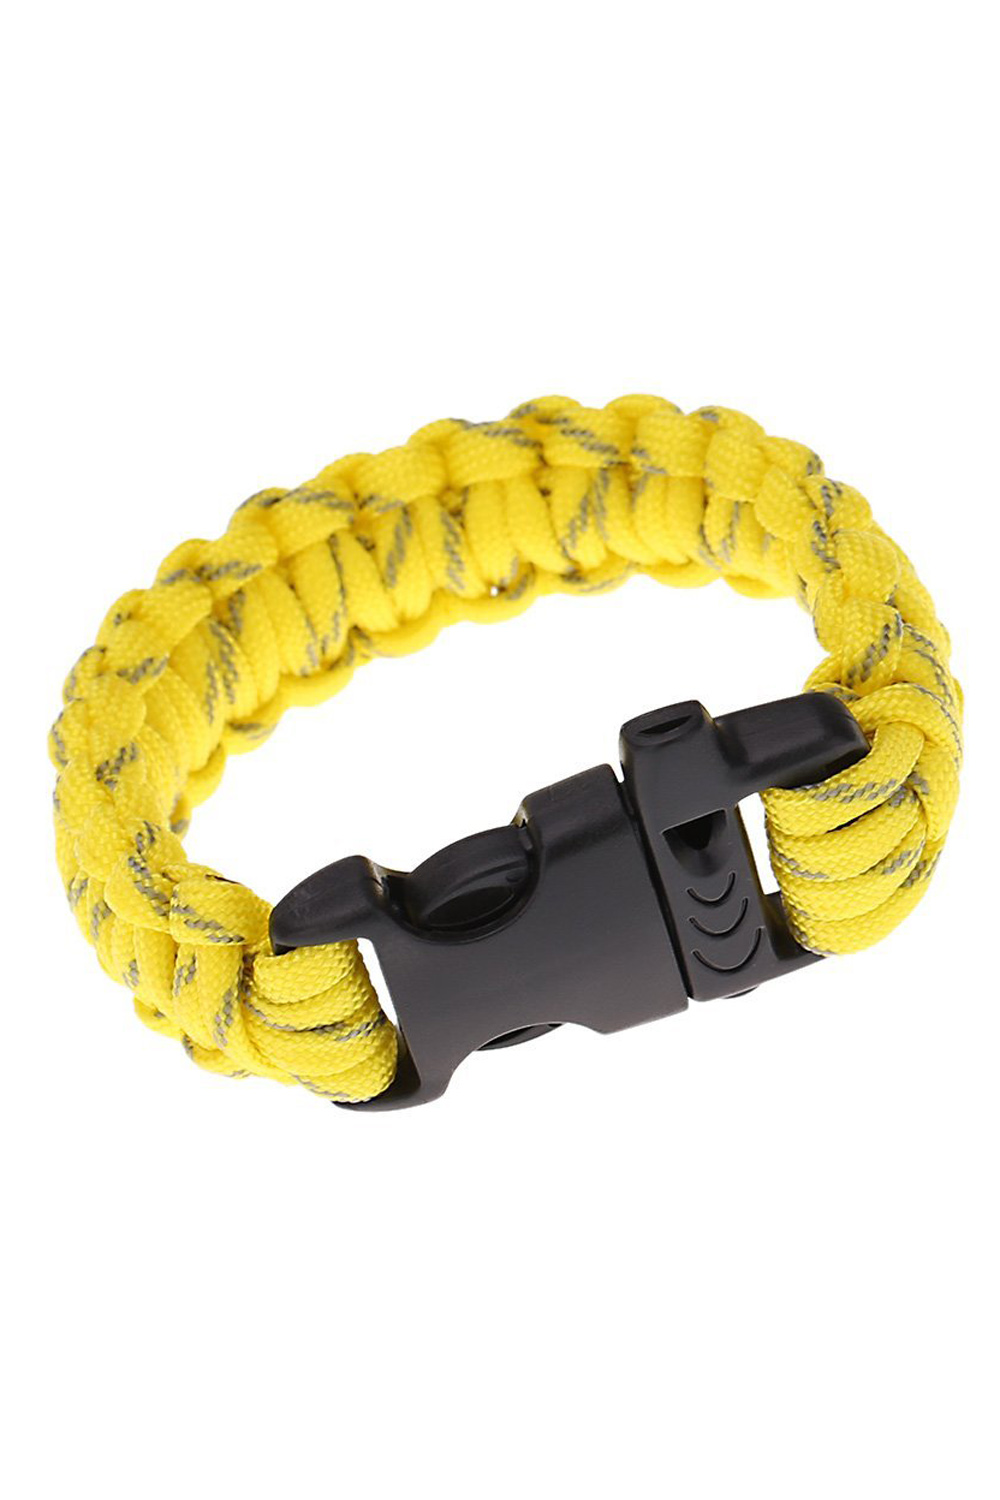 SZ-LGFM-Paracord Parachute Cord Emergency Kit Survival Bracelet Rope with Whistle Buckle Outdoor Camping yellow(China (Mainland))